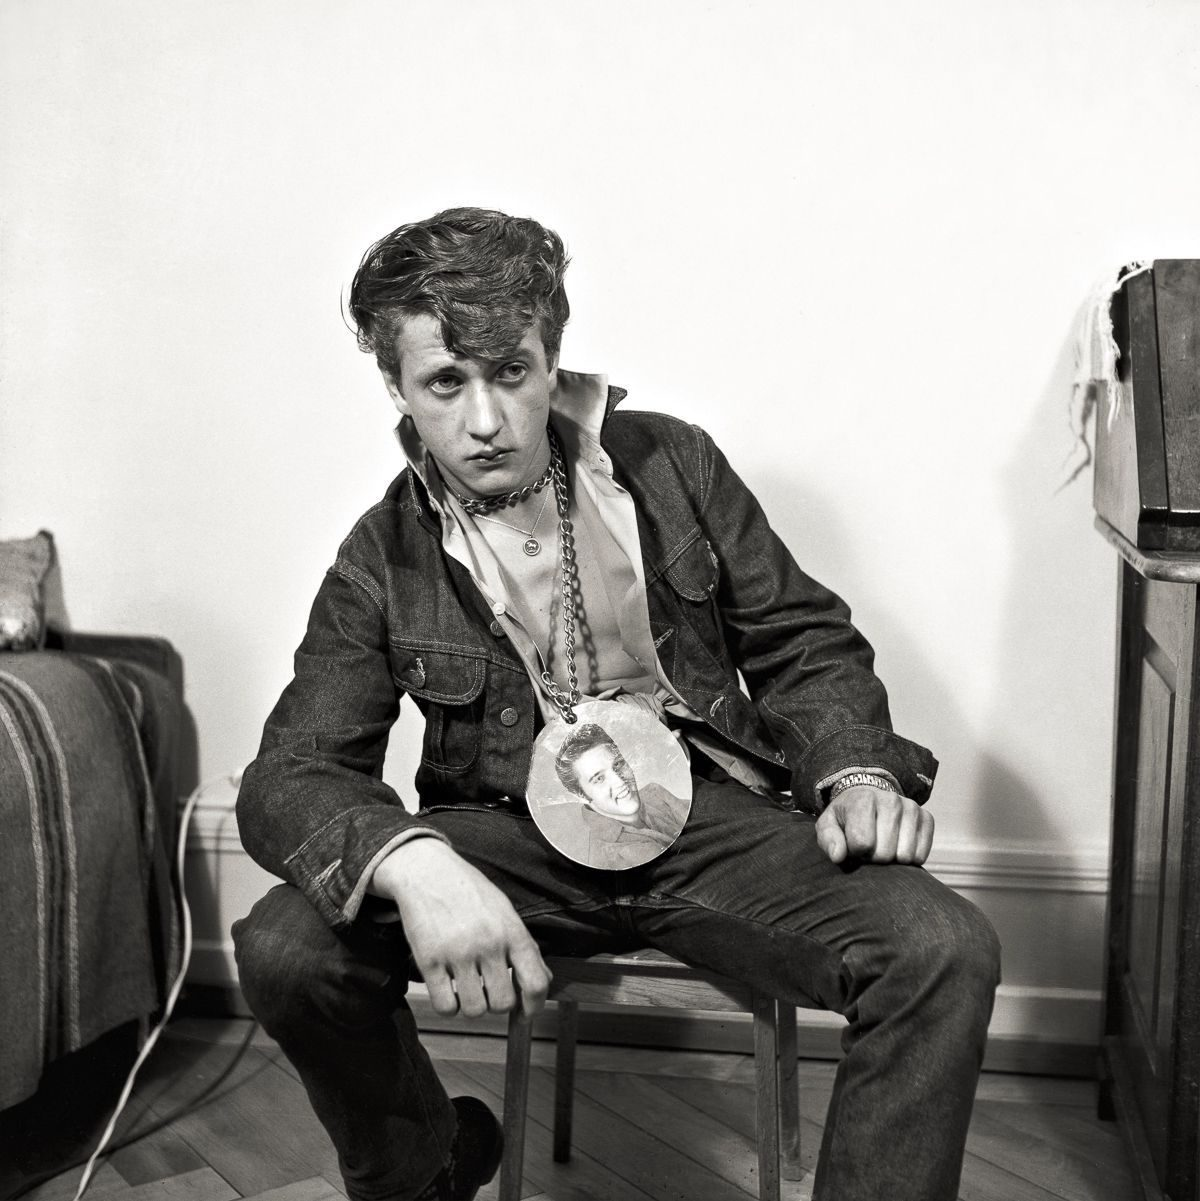 Halbstarken Karlheinz Weinberger photographs of teenagers and rockers in 1950s switzerland